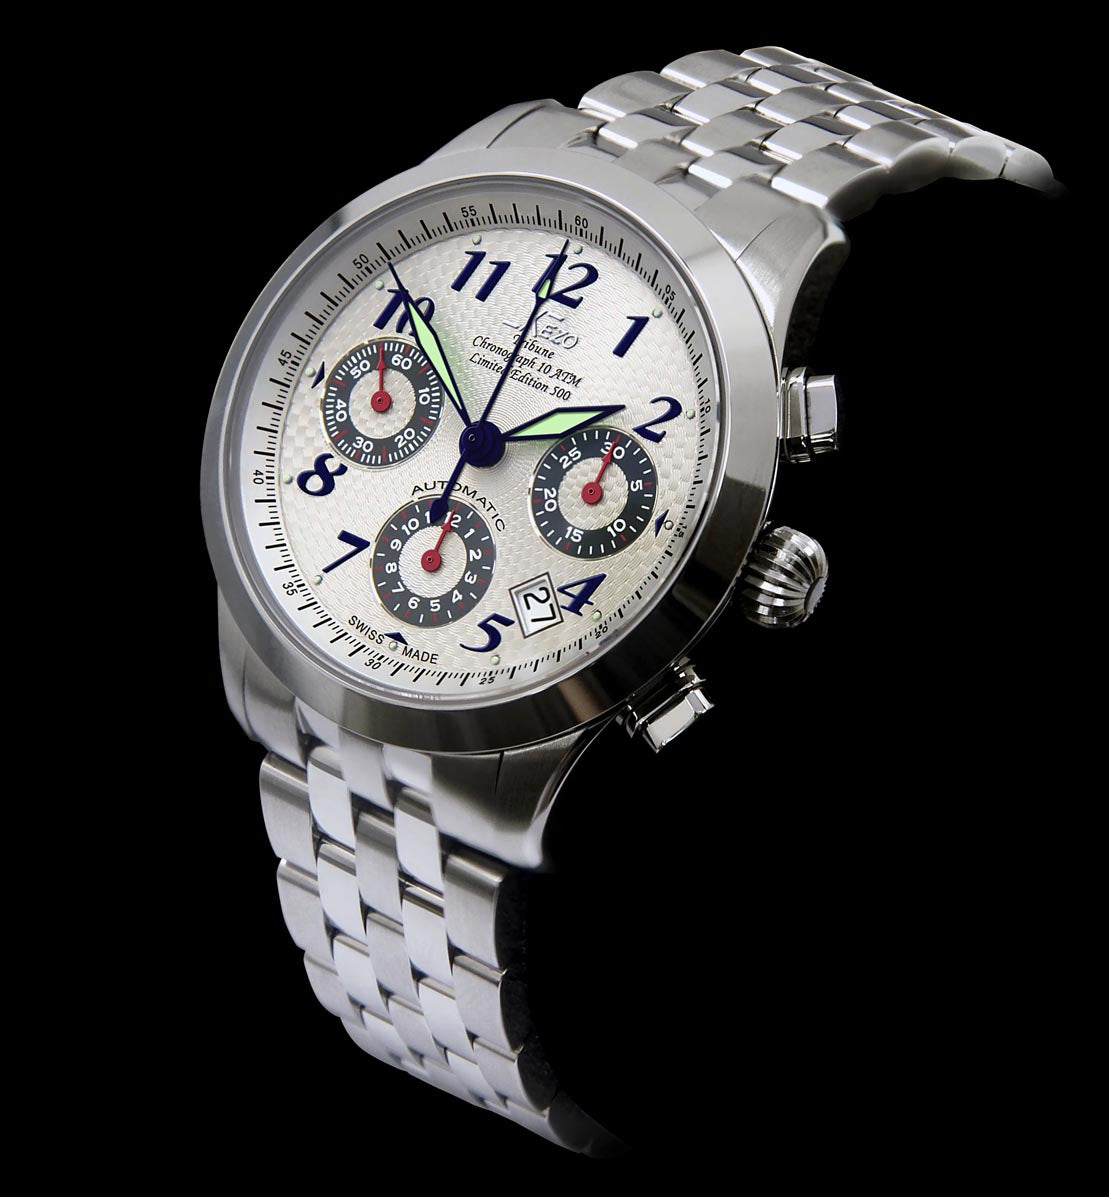 Tribune Valjoux Chronograph 7753